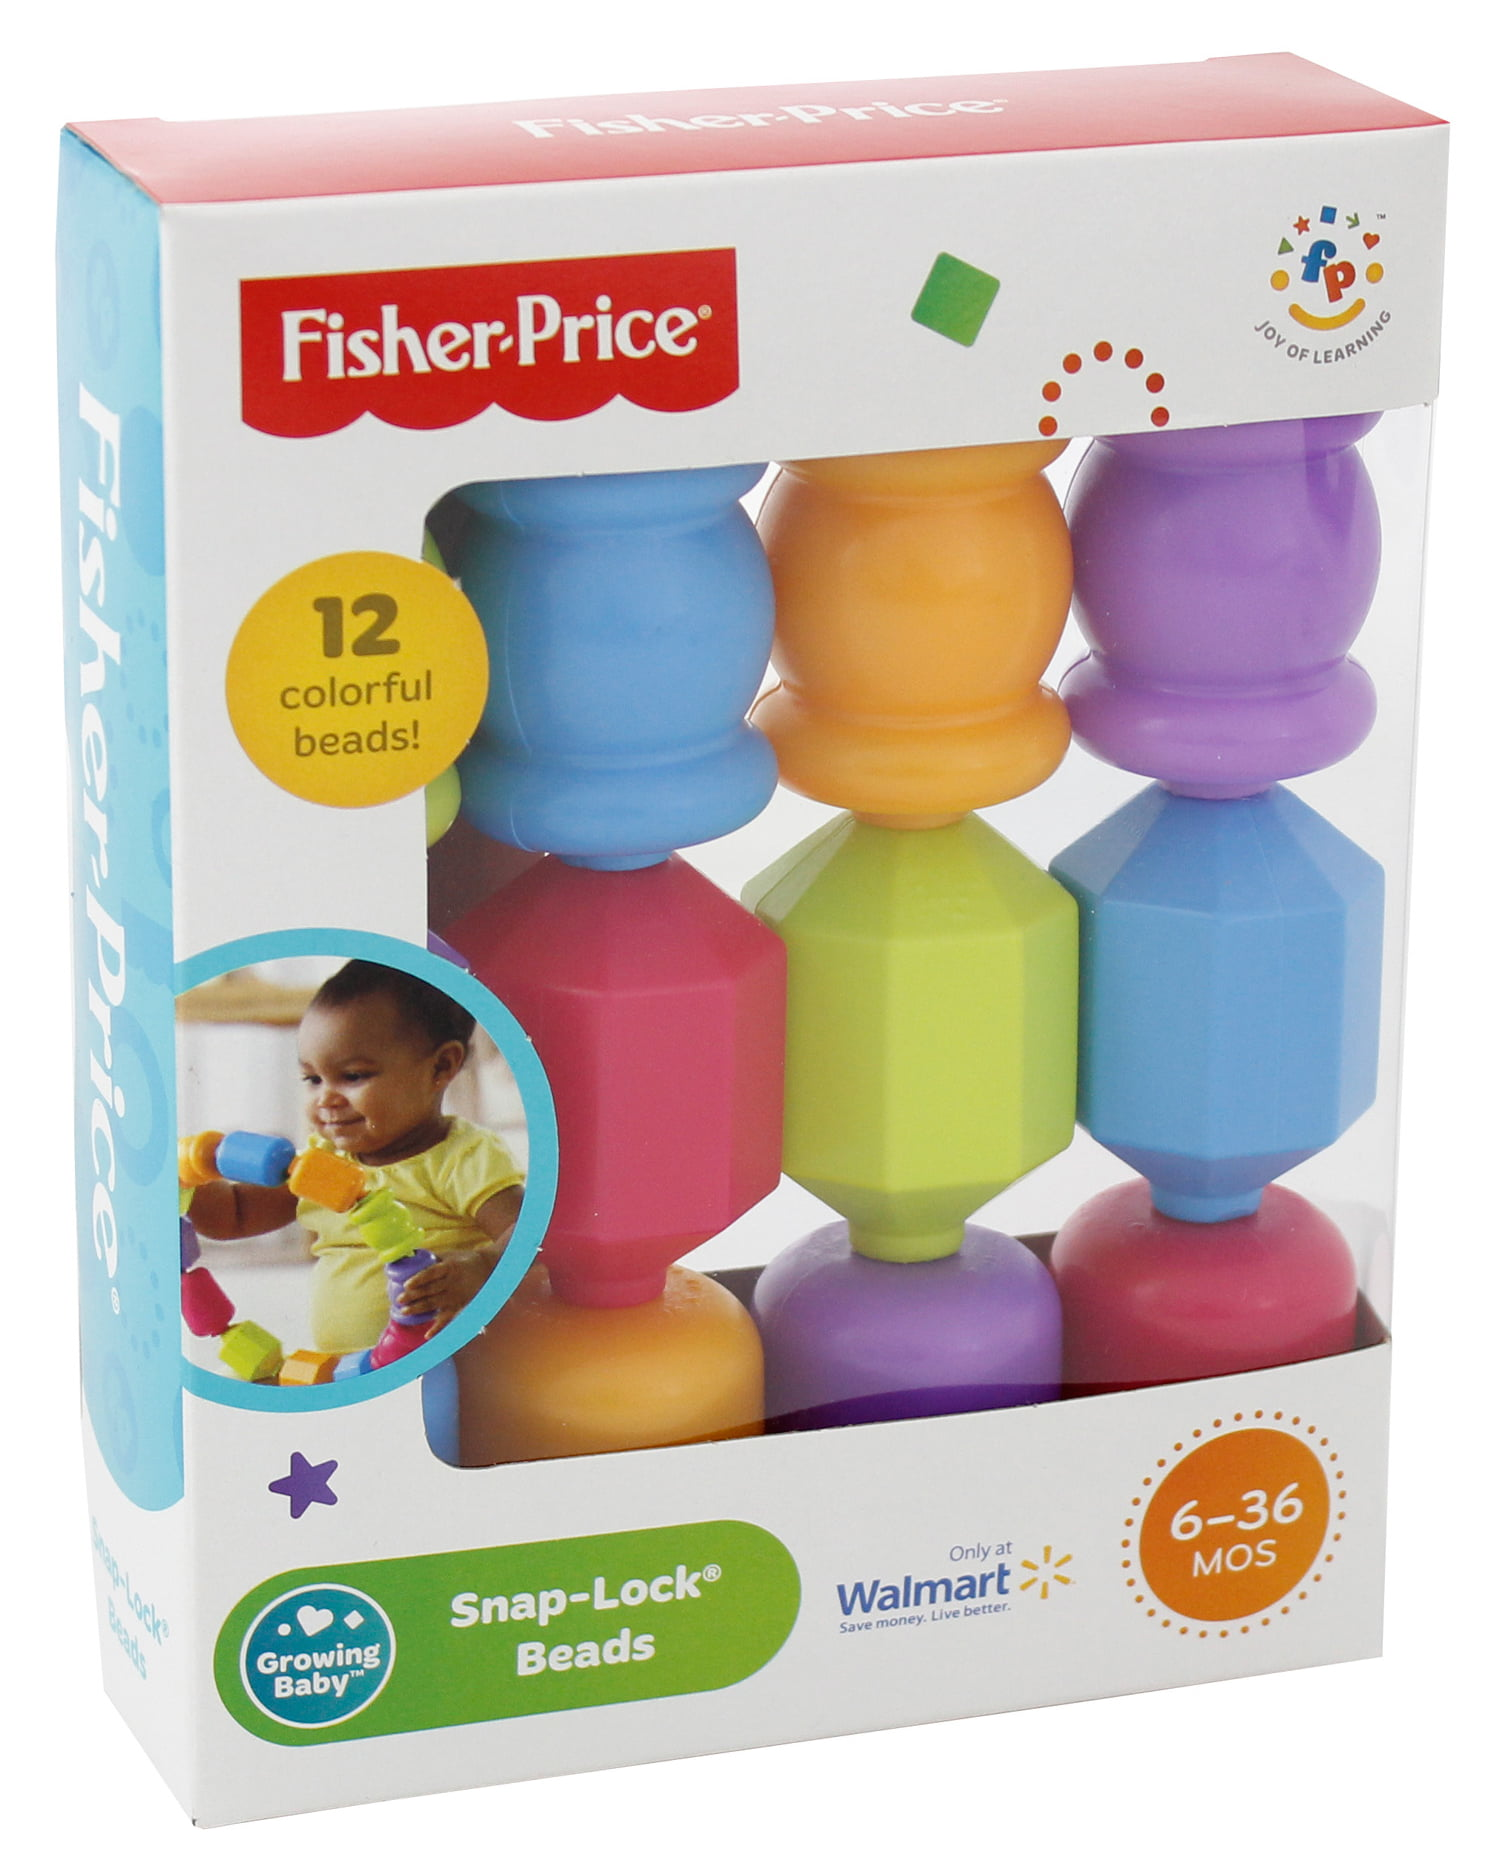 Fisher Price Snap Lock Beads Walmart